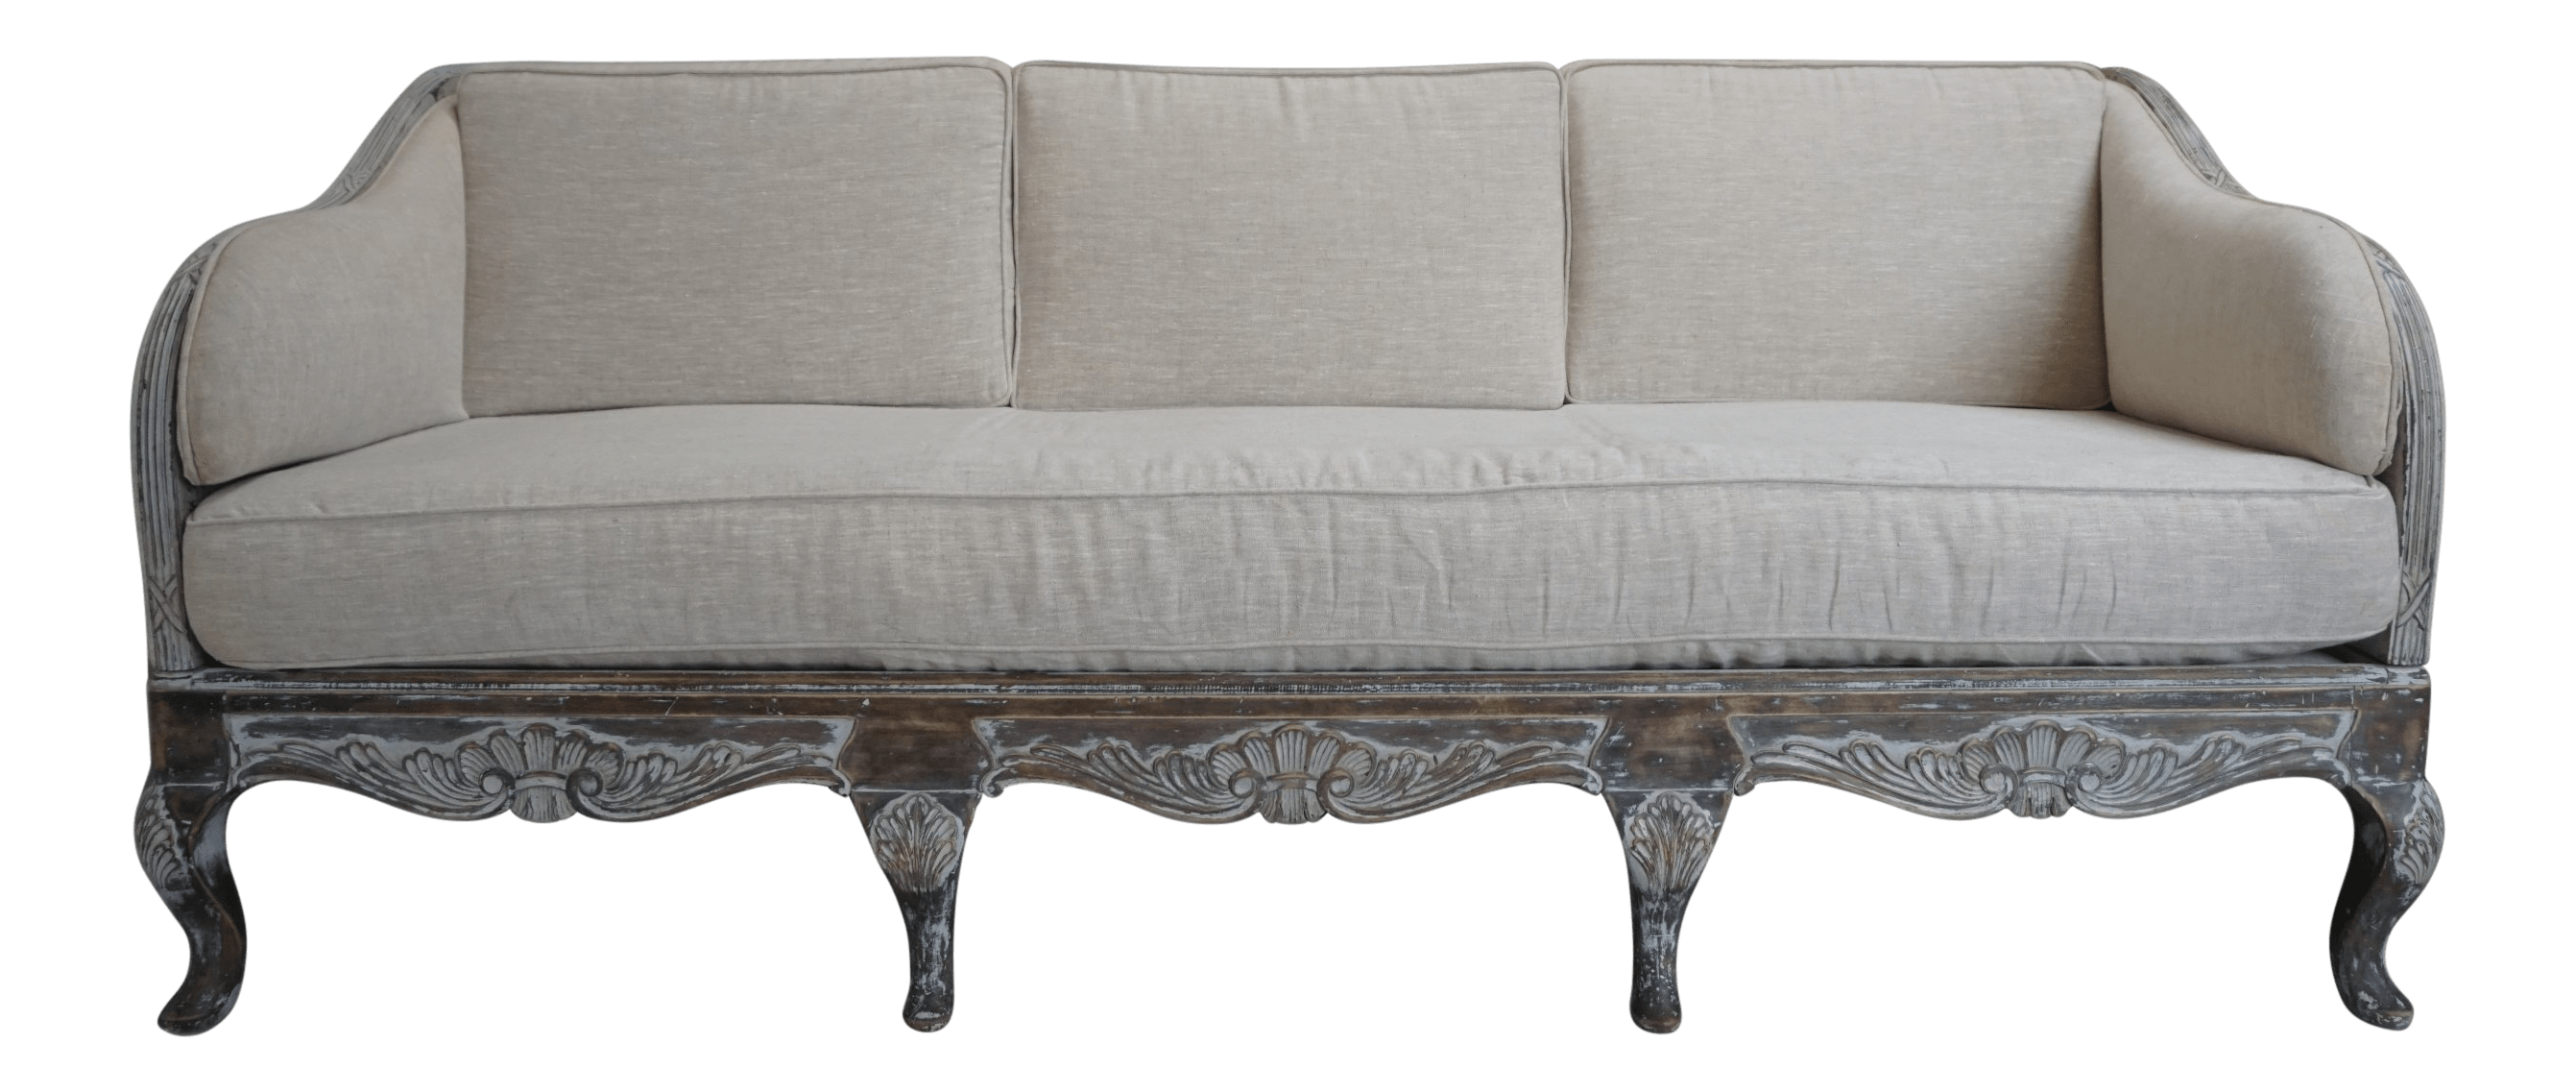 Canape Sofa French Louis Xv Style Belgian Linen Canape Sofa